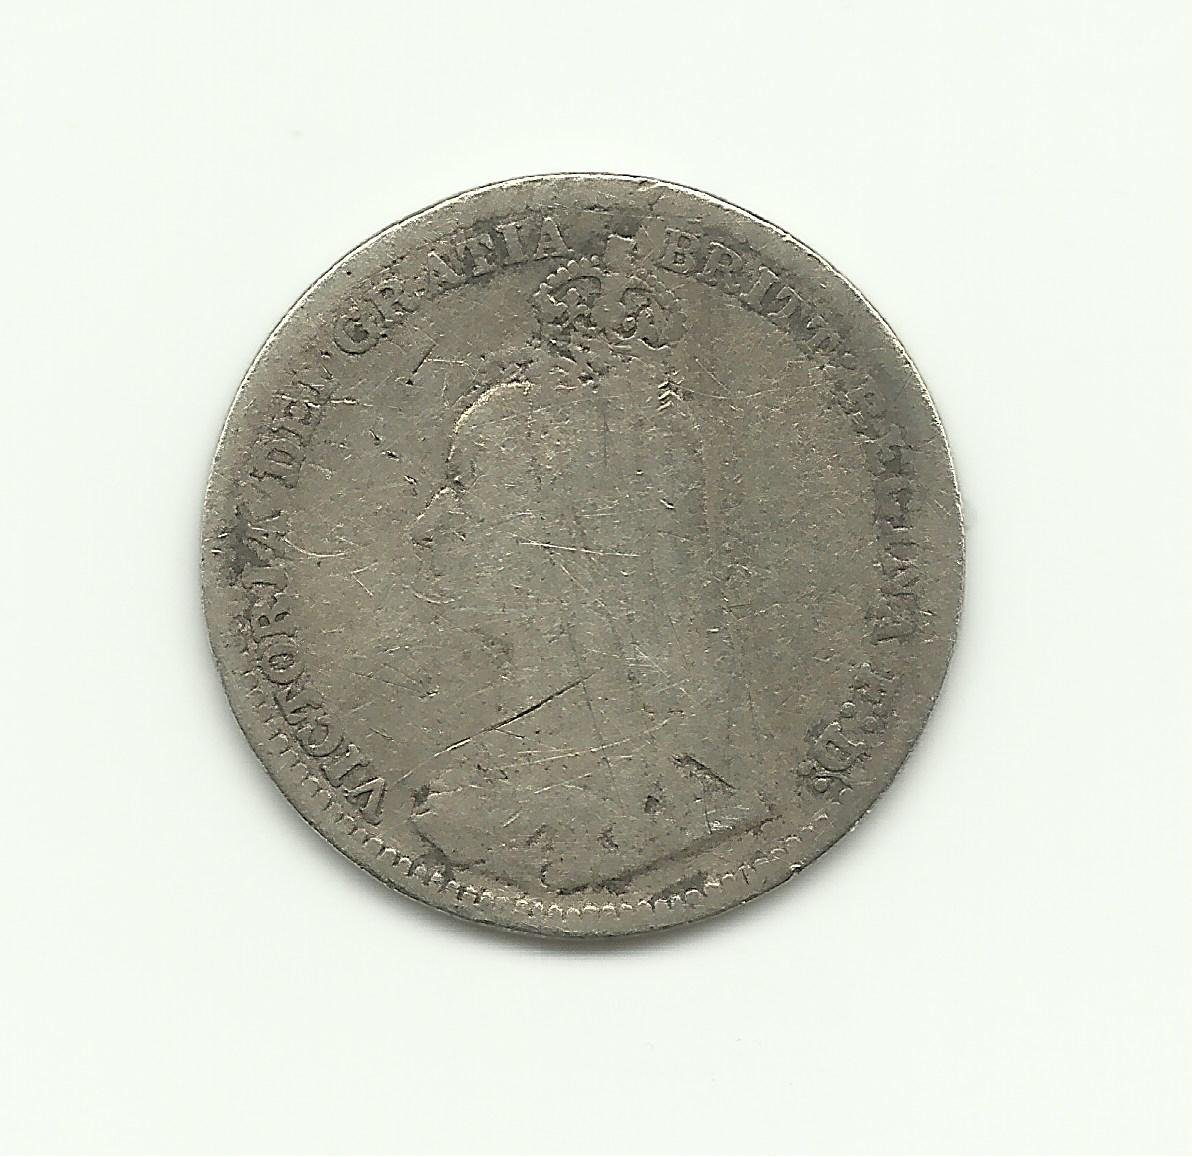 1890 3 Pence UK Silver Collection